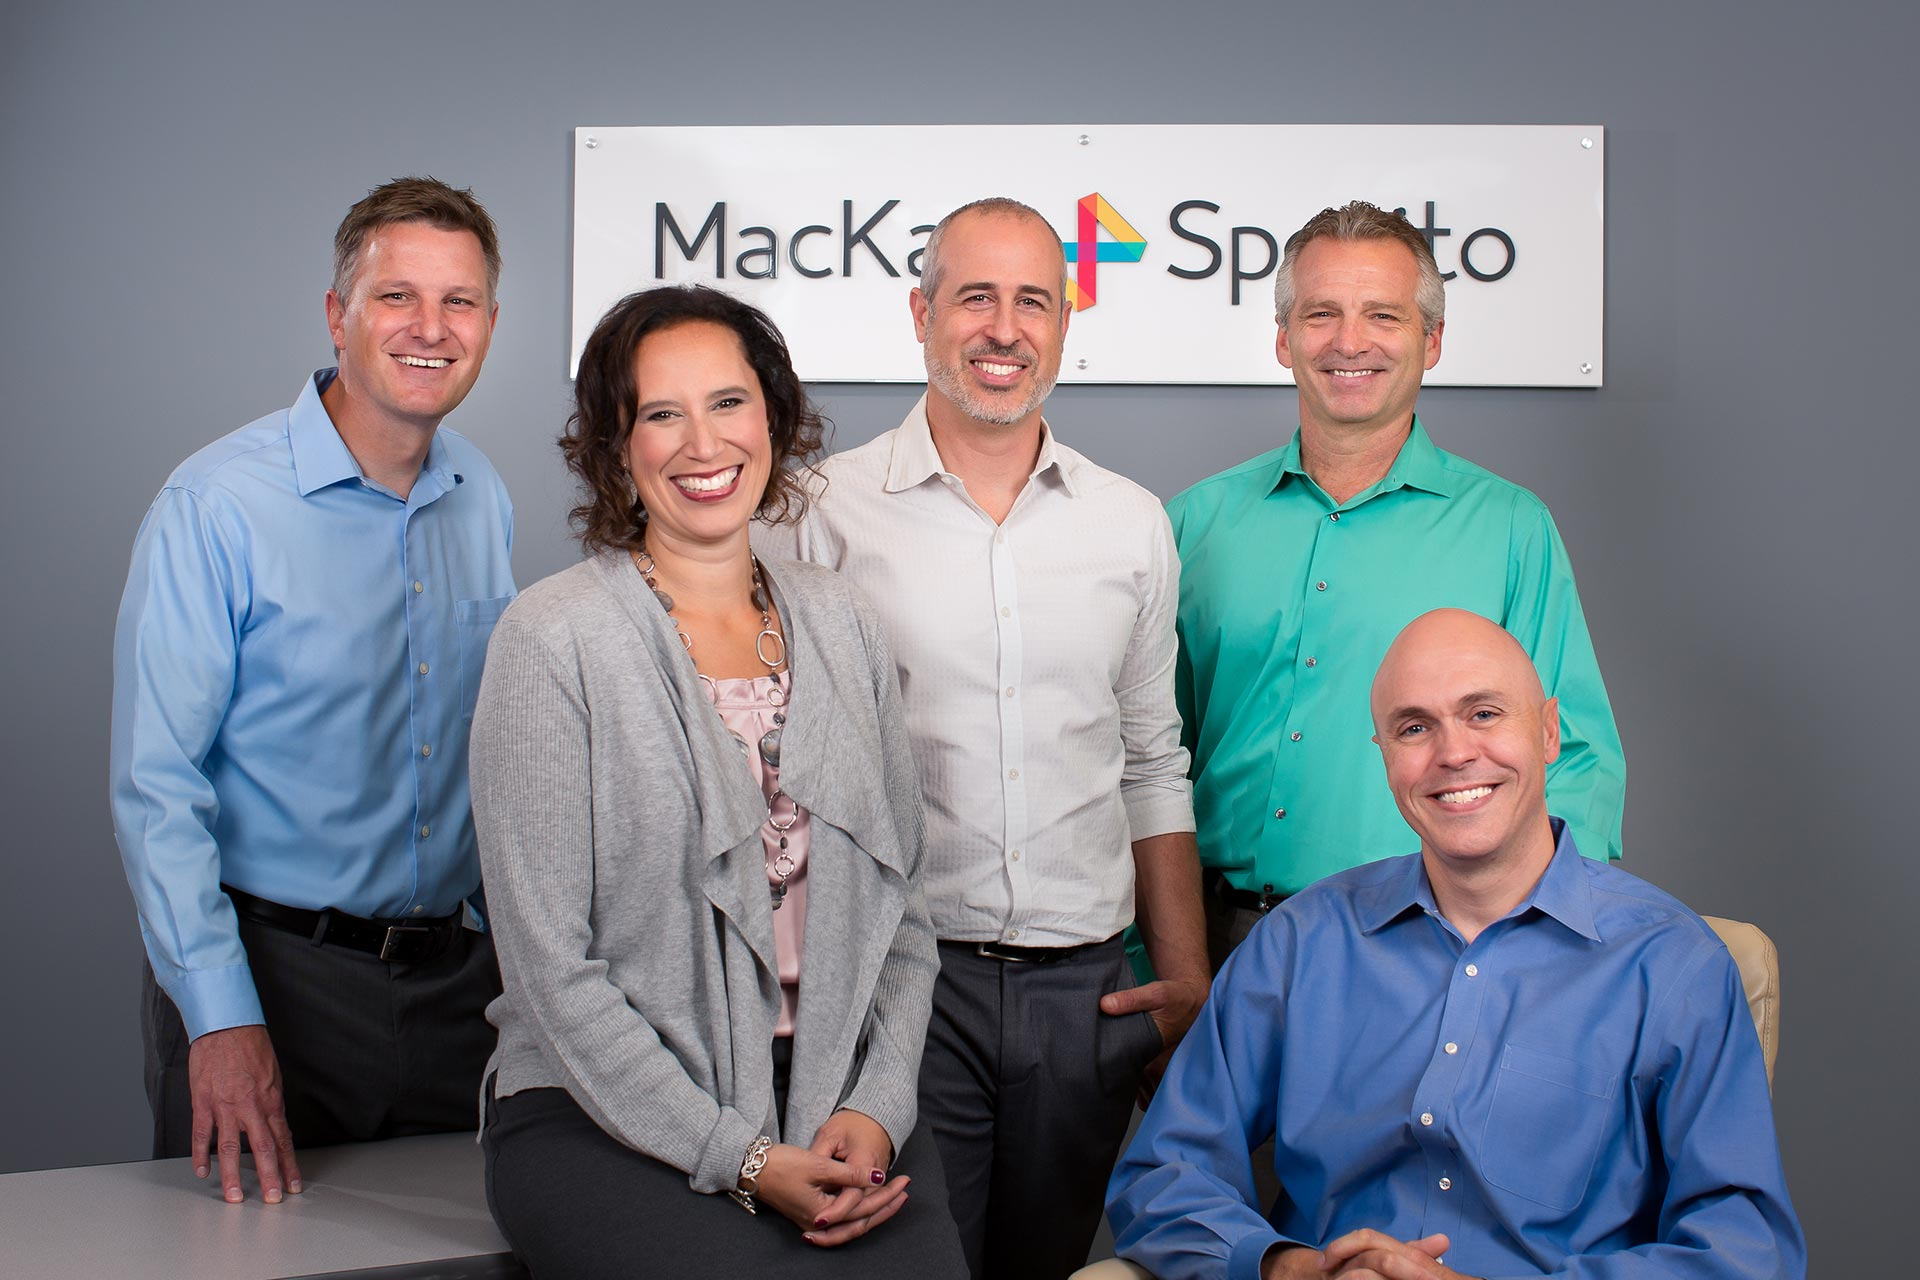 MacKay Sposito Partner Group